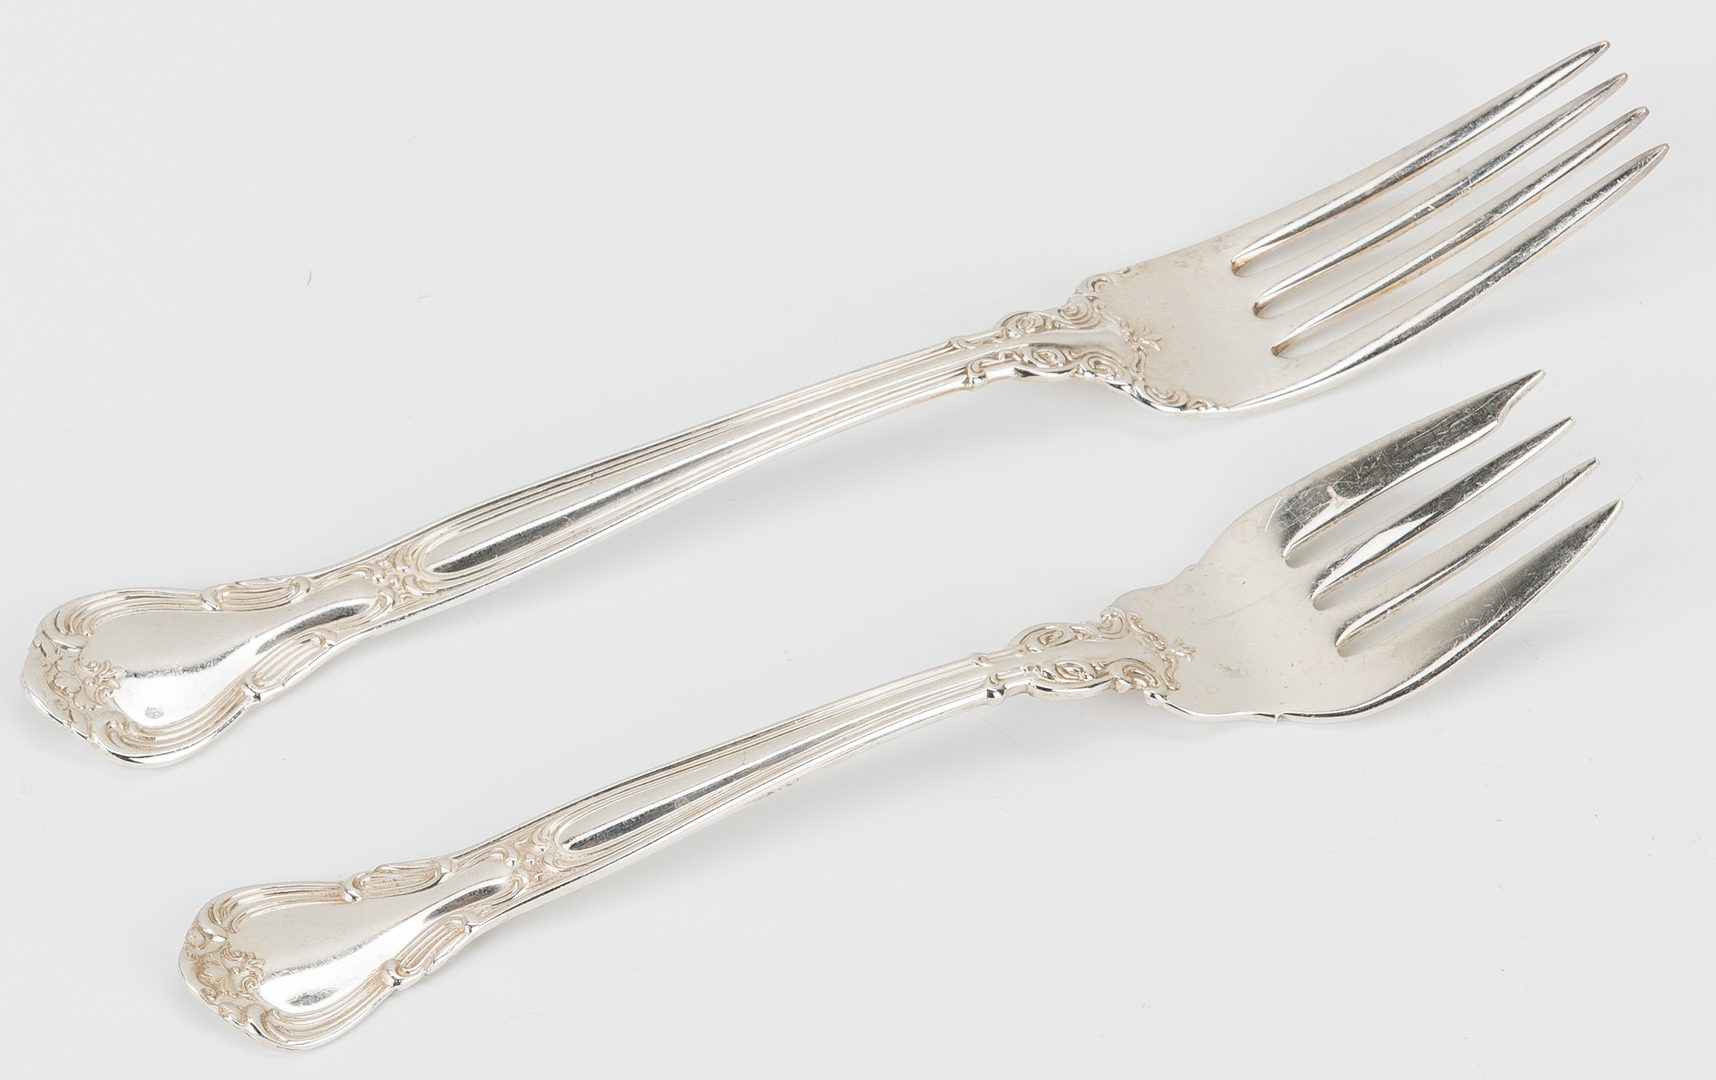 Lot 187: 132 pcs. Gorham Chantilly Sterling Flatware